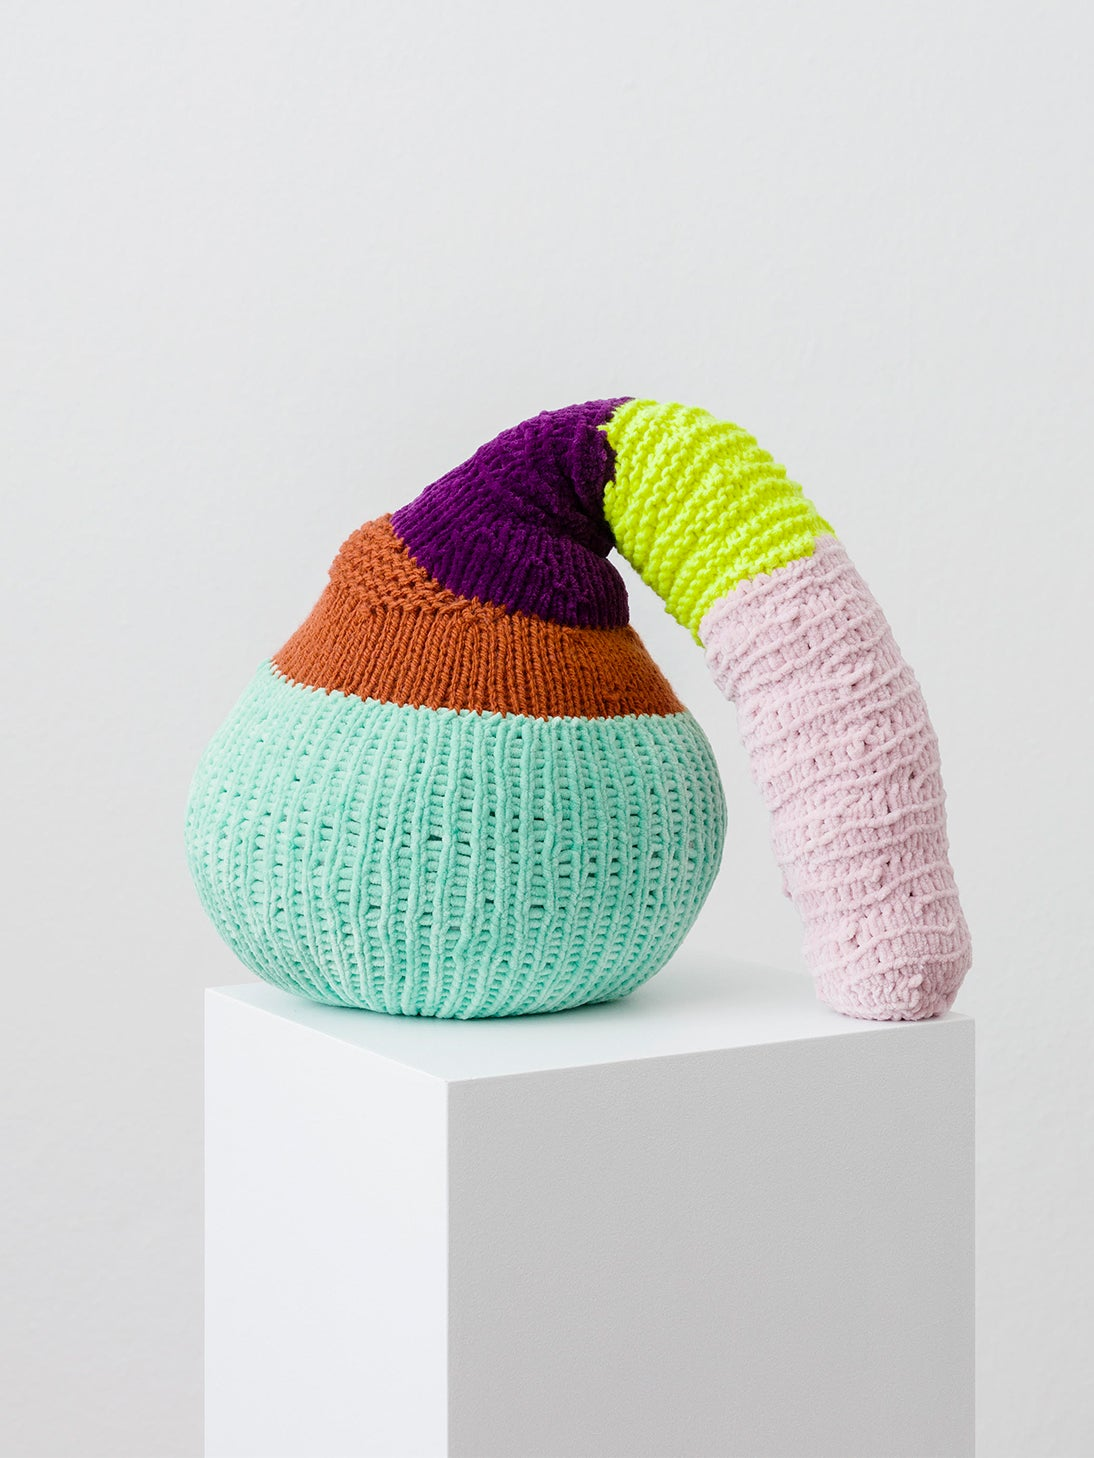 Knitted gourd